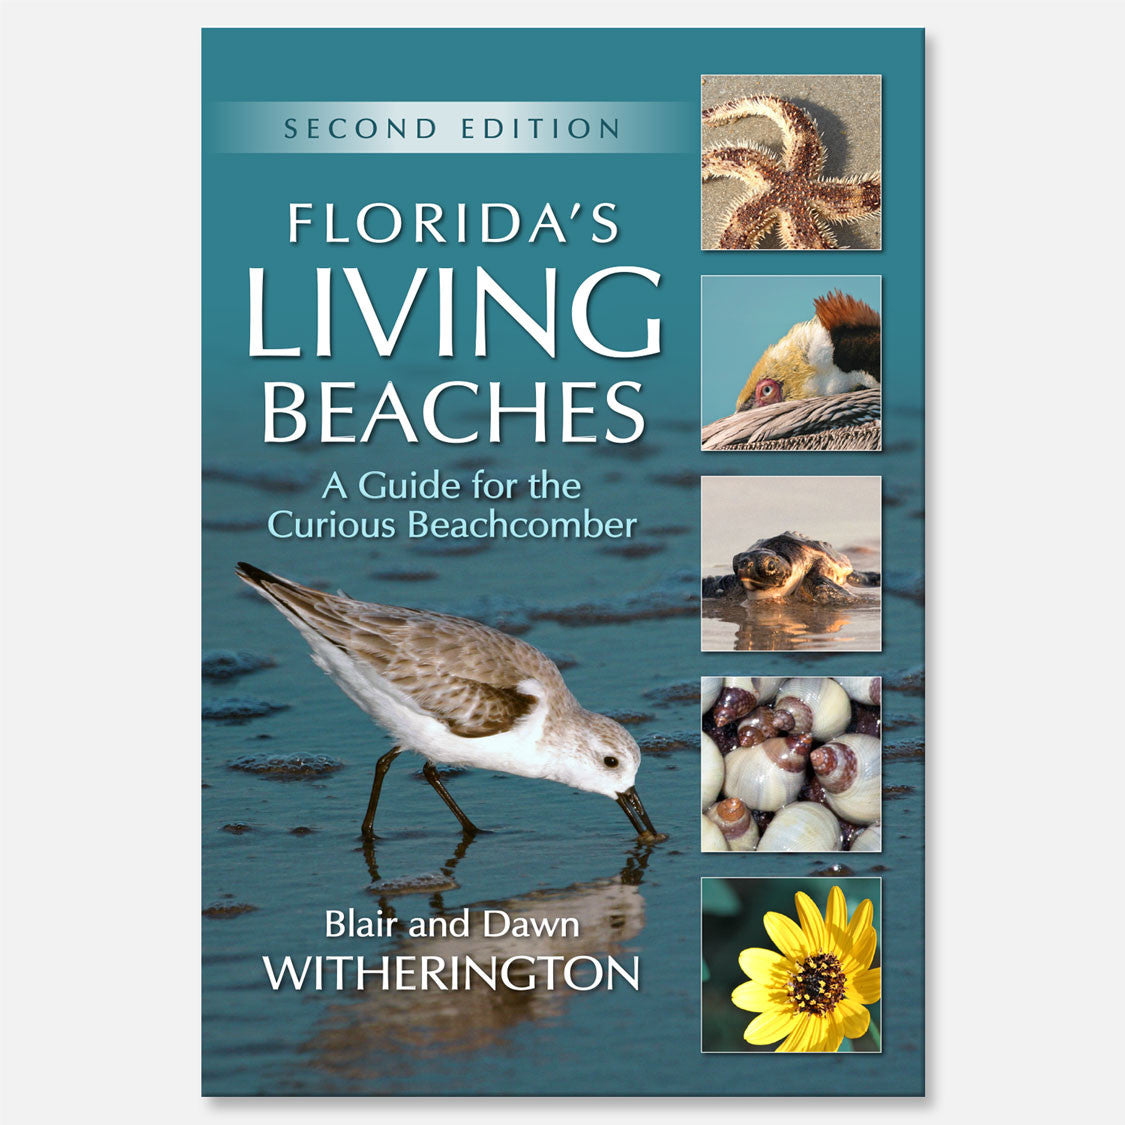 Florida's Living Beaches (2nd Edition) by Blair and Dawn Witherington